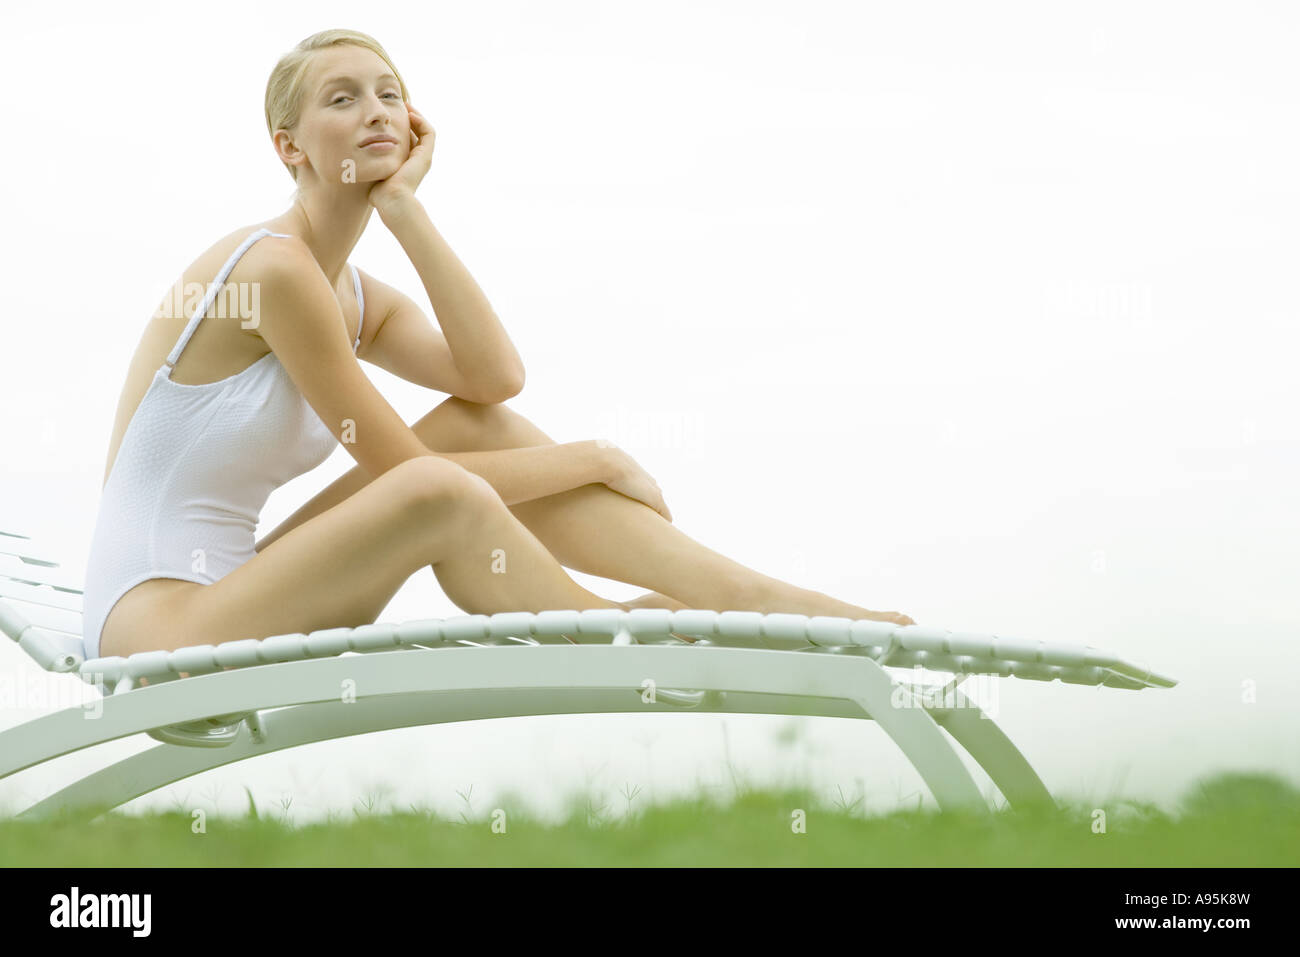 Teenage girl sitting on lounge chair, holding head, looking at camera - Stock Image